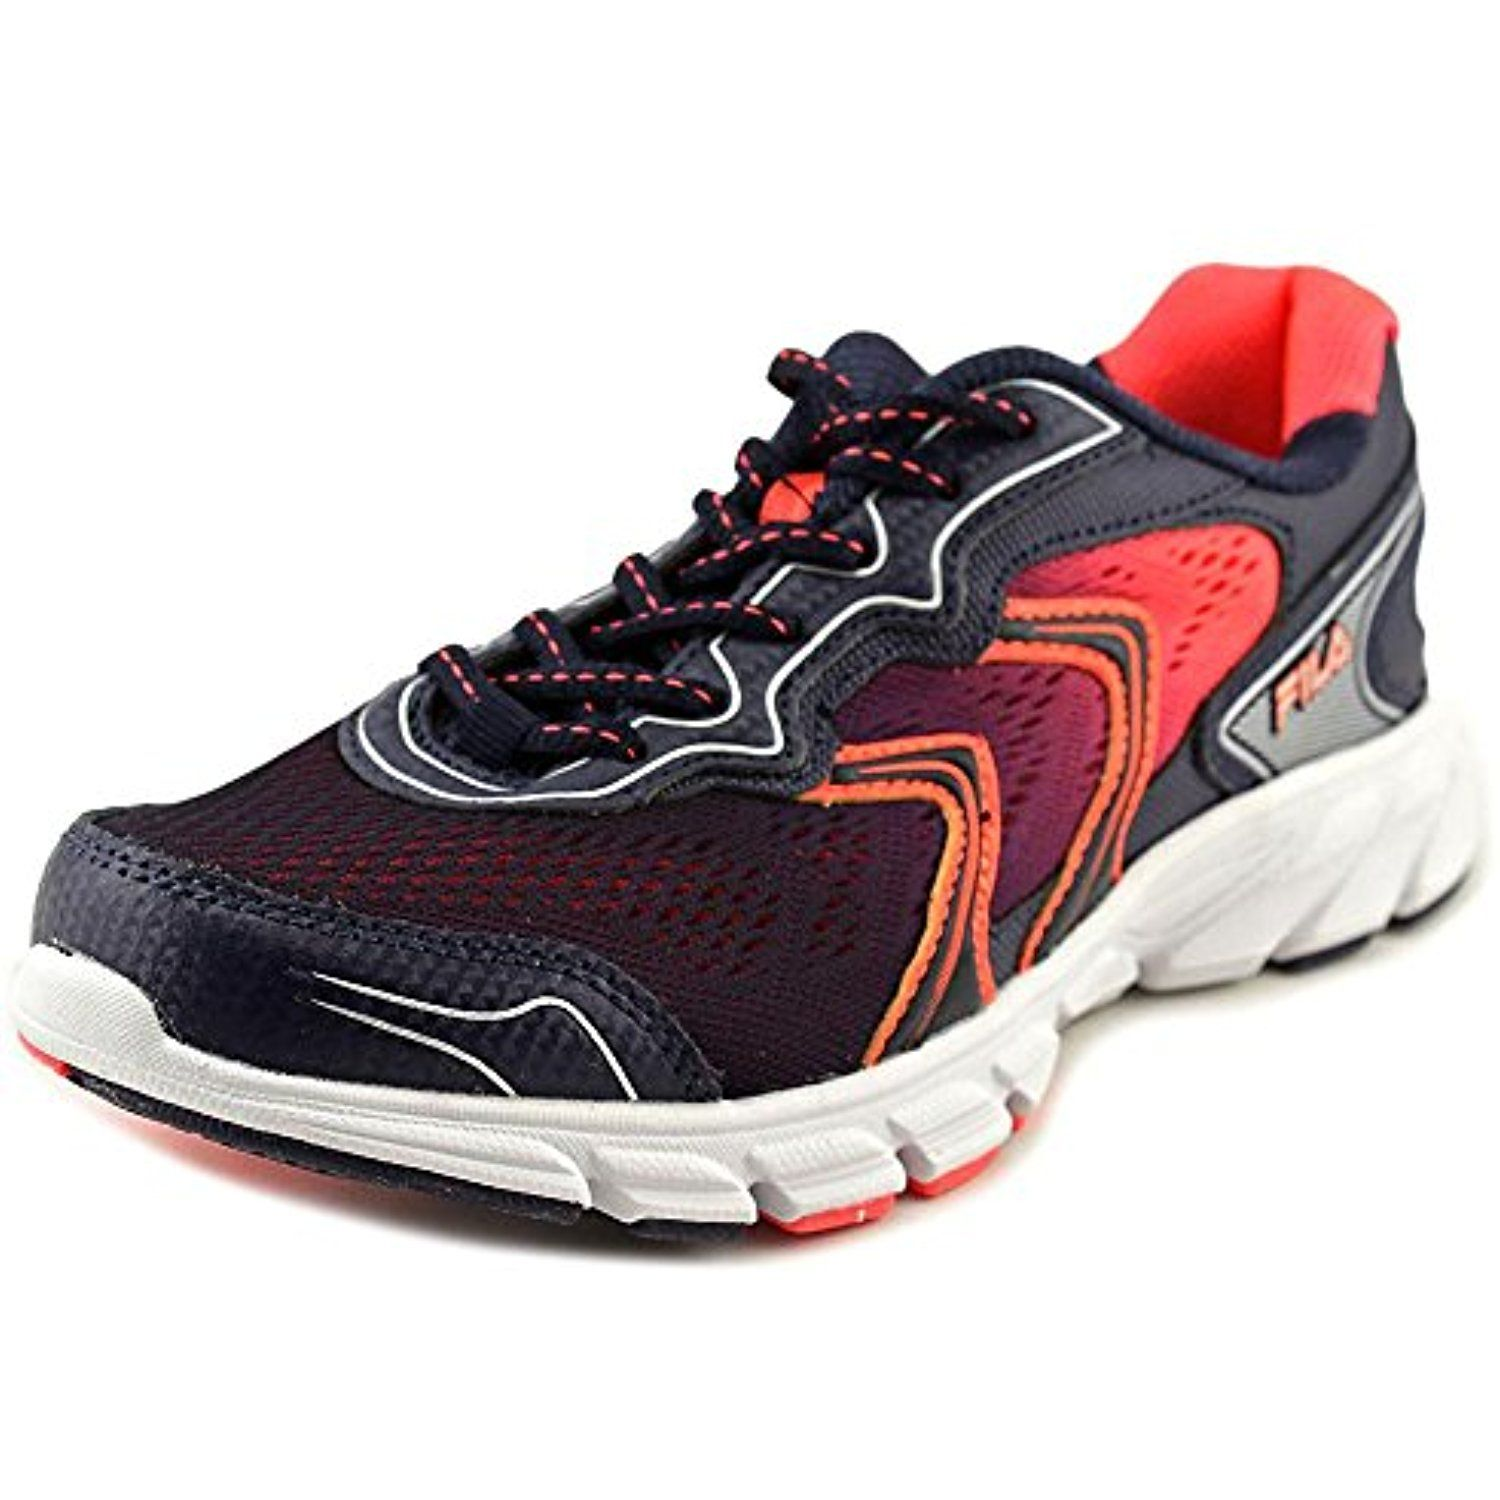 Women's Stellaray Ankle High Running Shoe * Continue to the